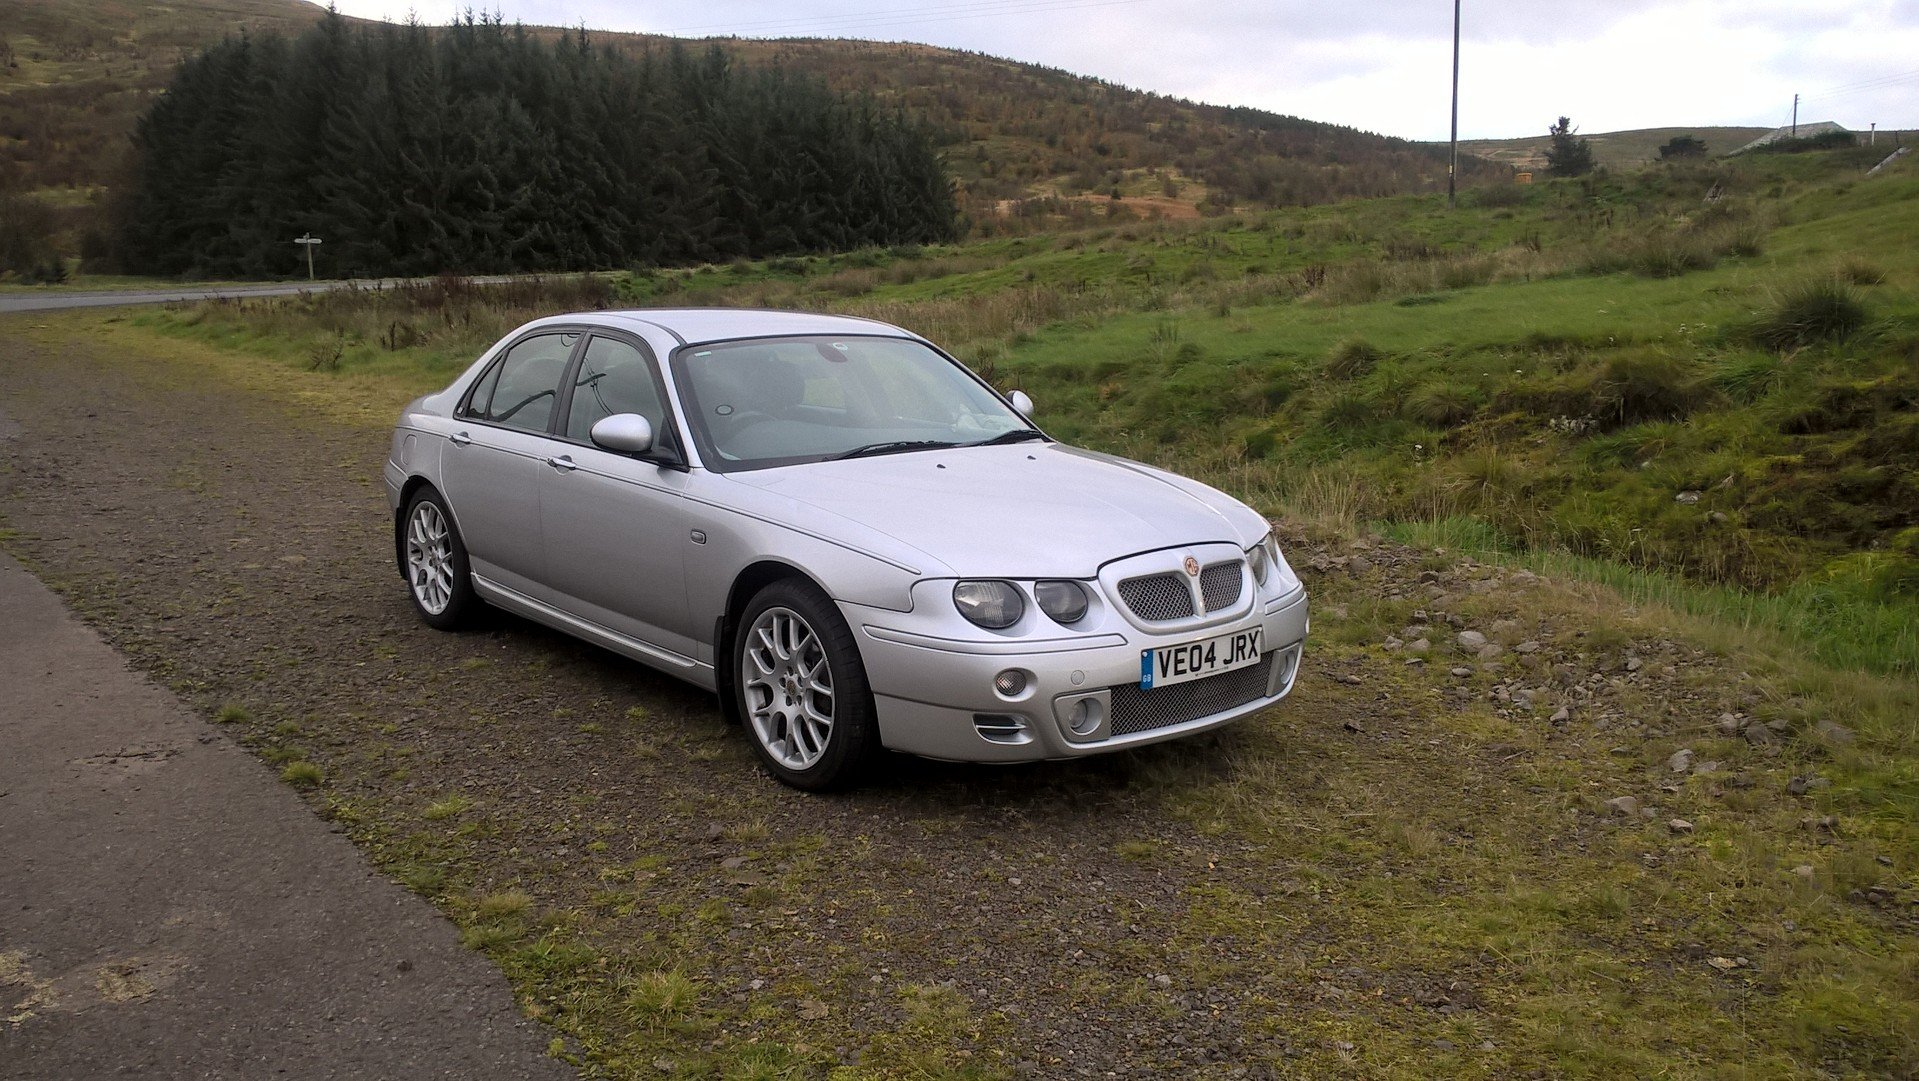 2004 mg zt 1.8t 160+ saloon For Sale (picture 6 of 6)